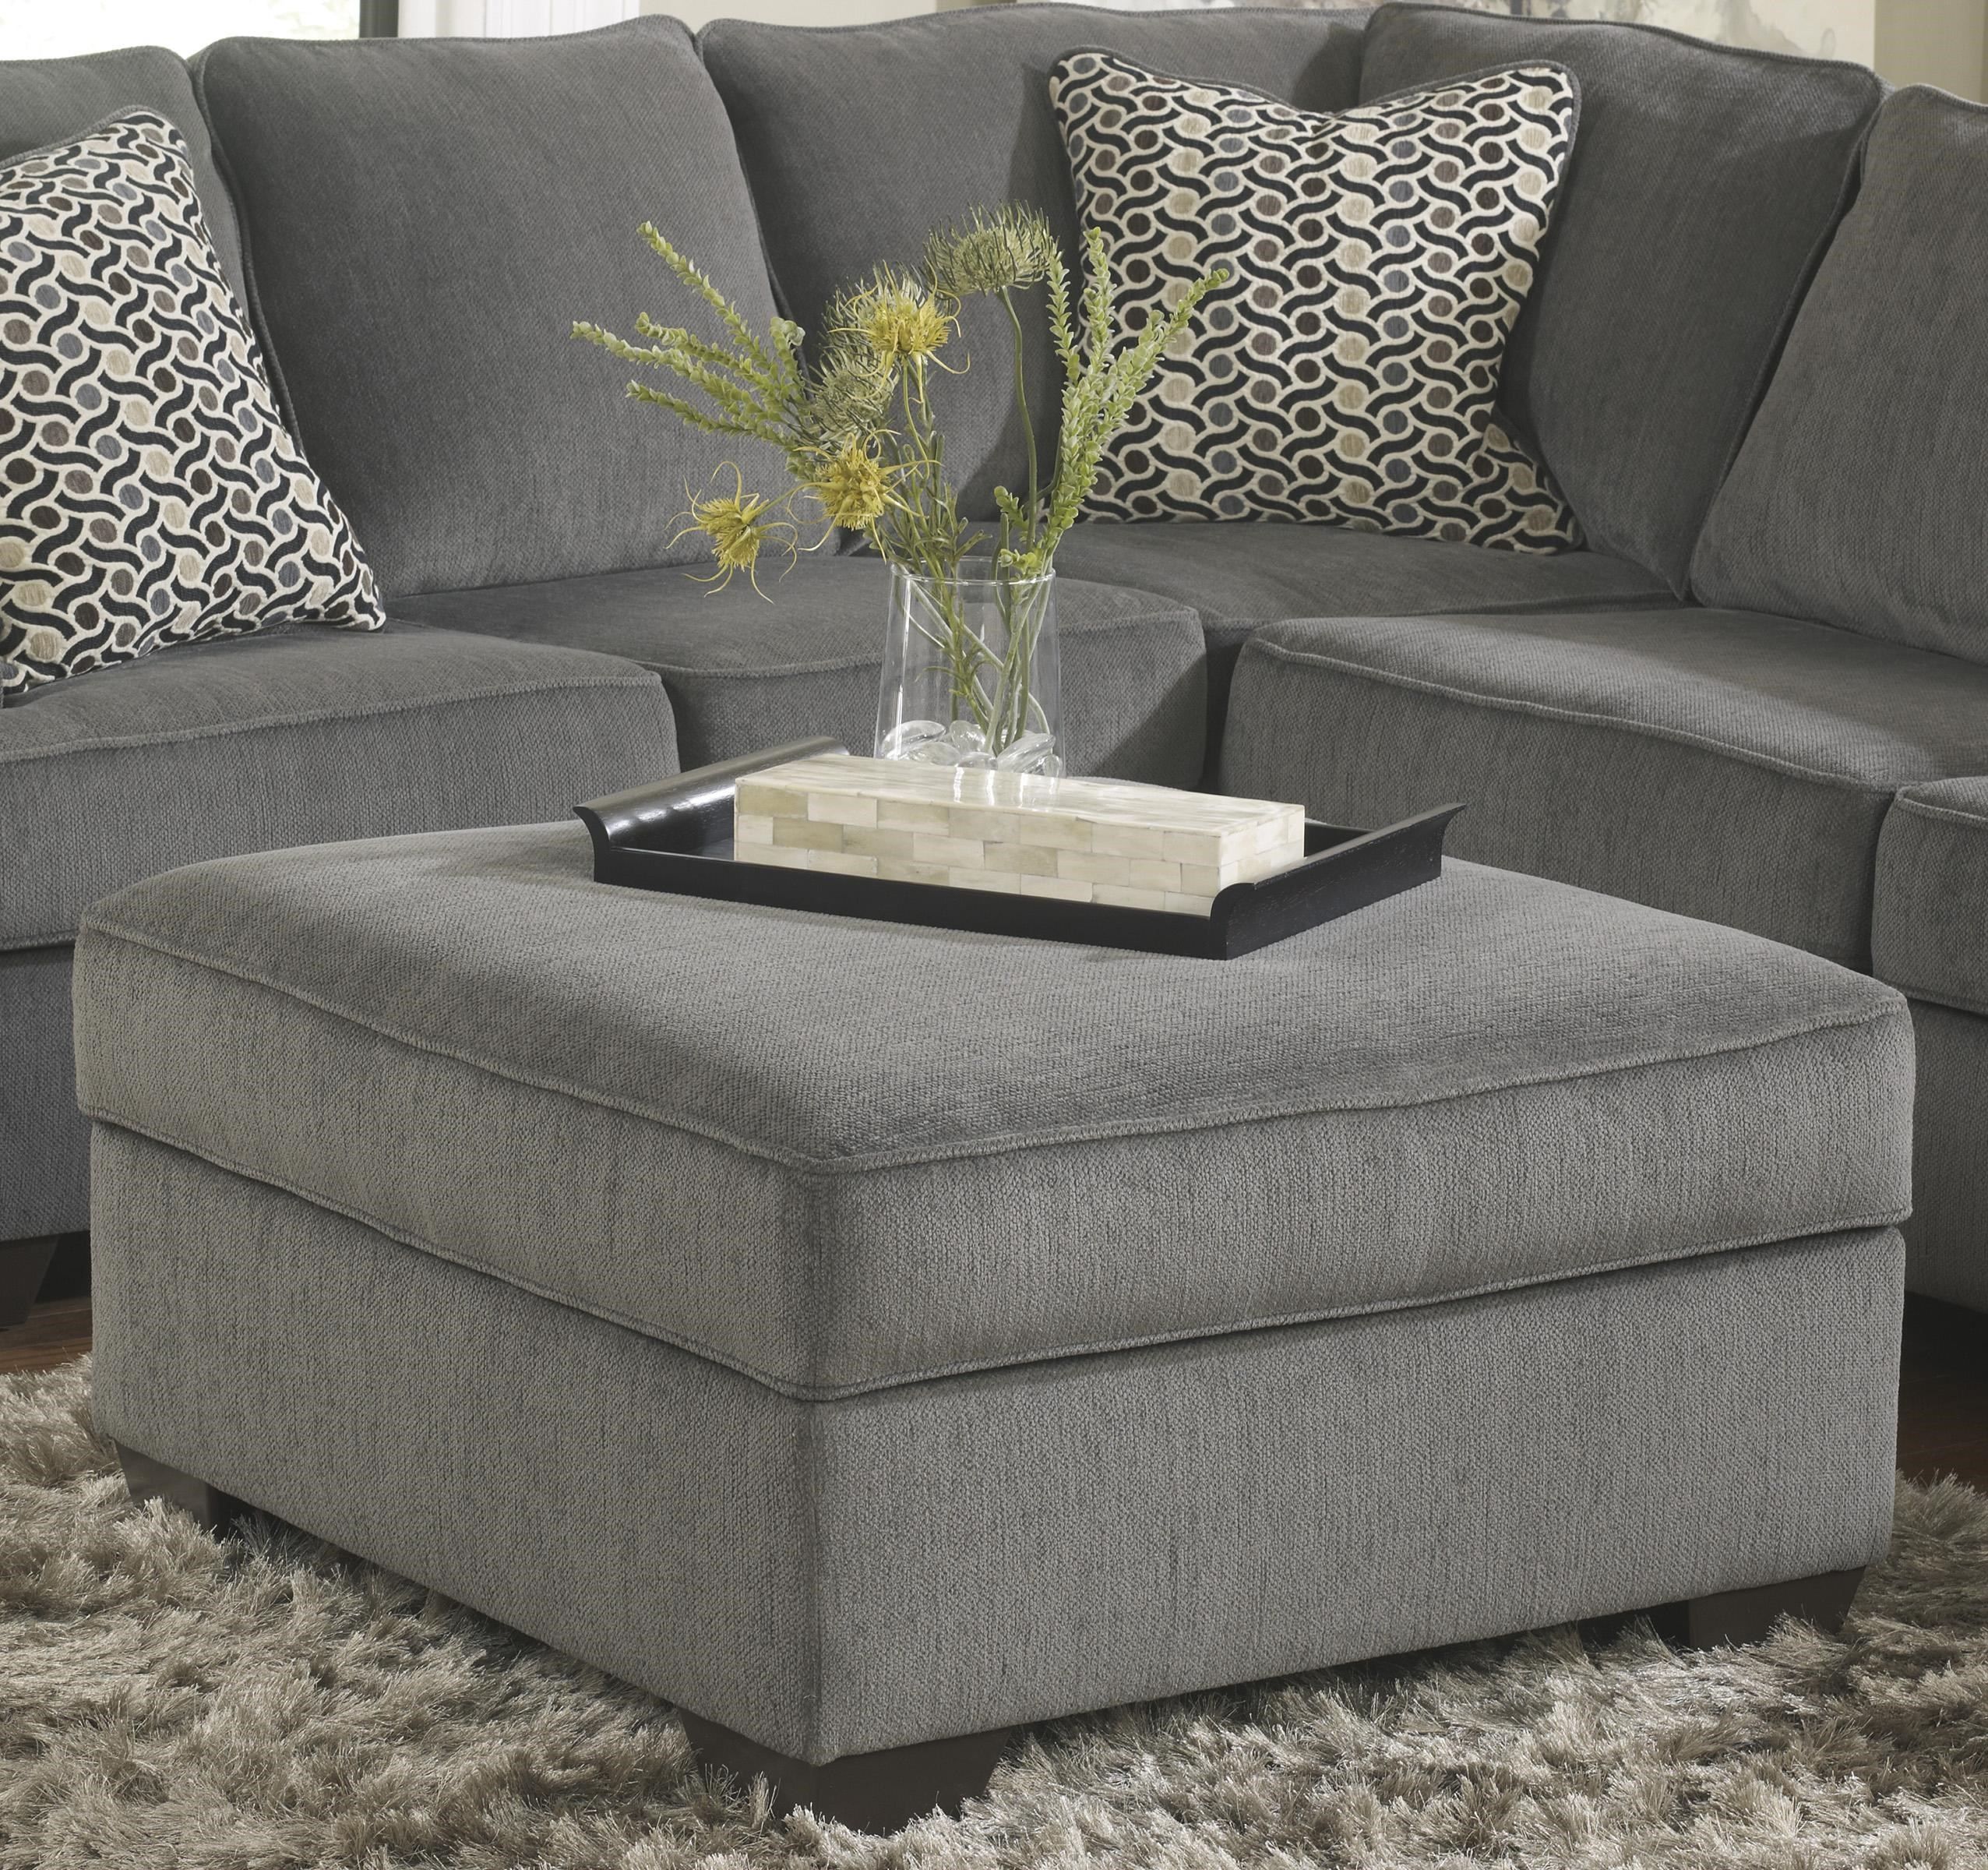 Ashley Furniture Loric   SmokeOttoman With Storage ...